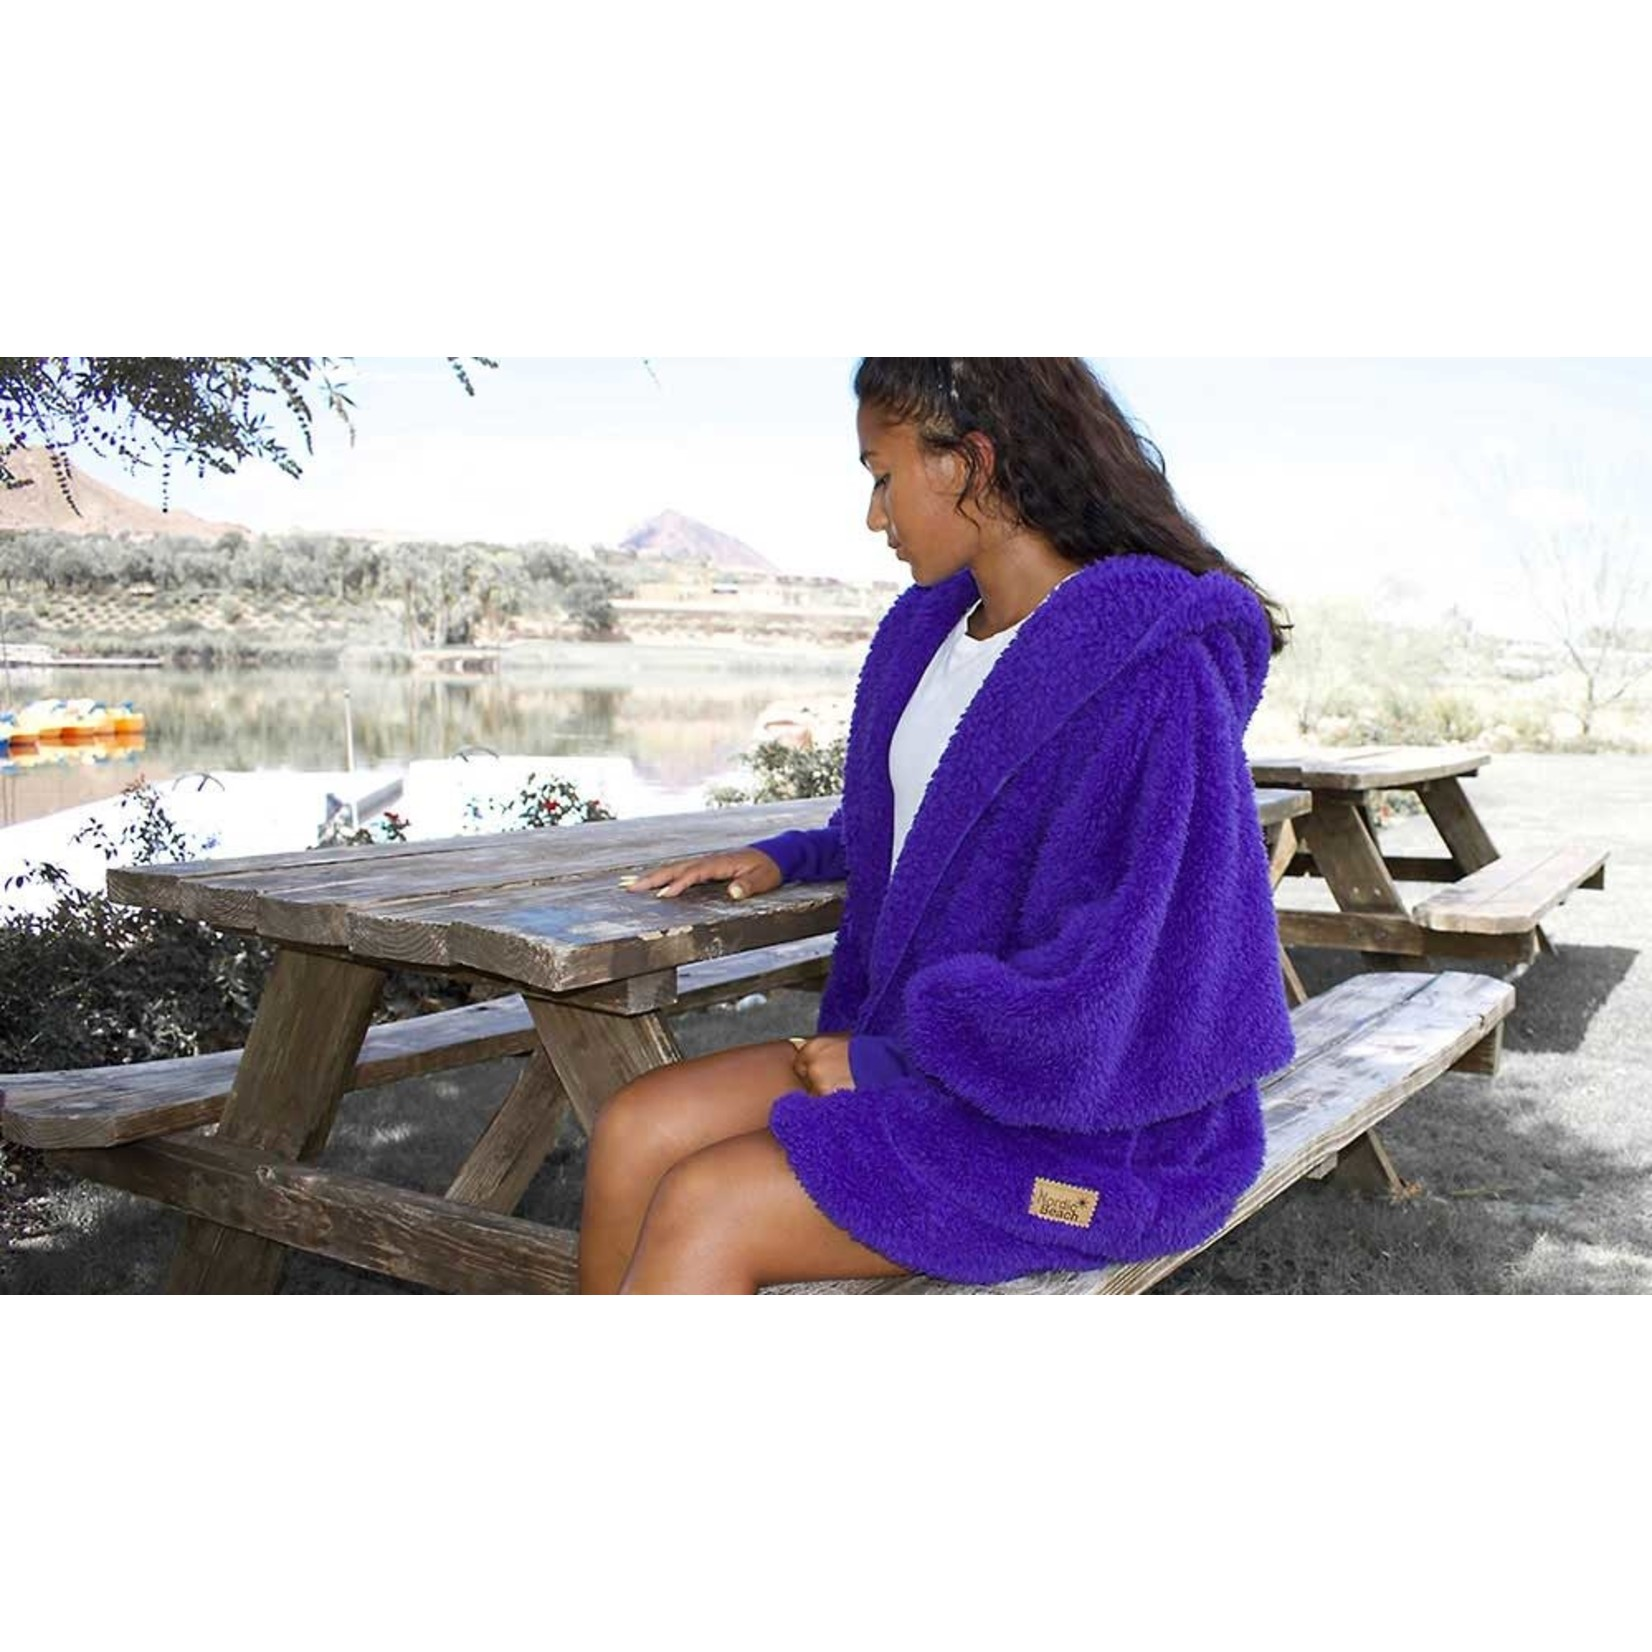 Nordic Beach Fuzzy Fleece Hooded Cardigan in Exotic Violet